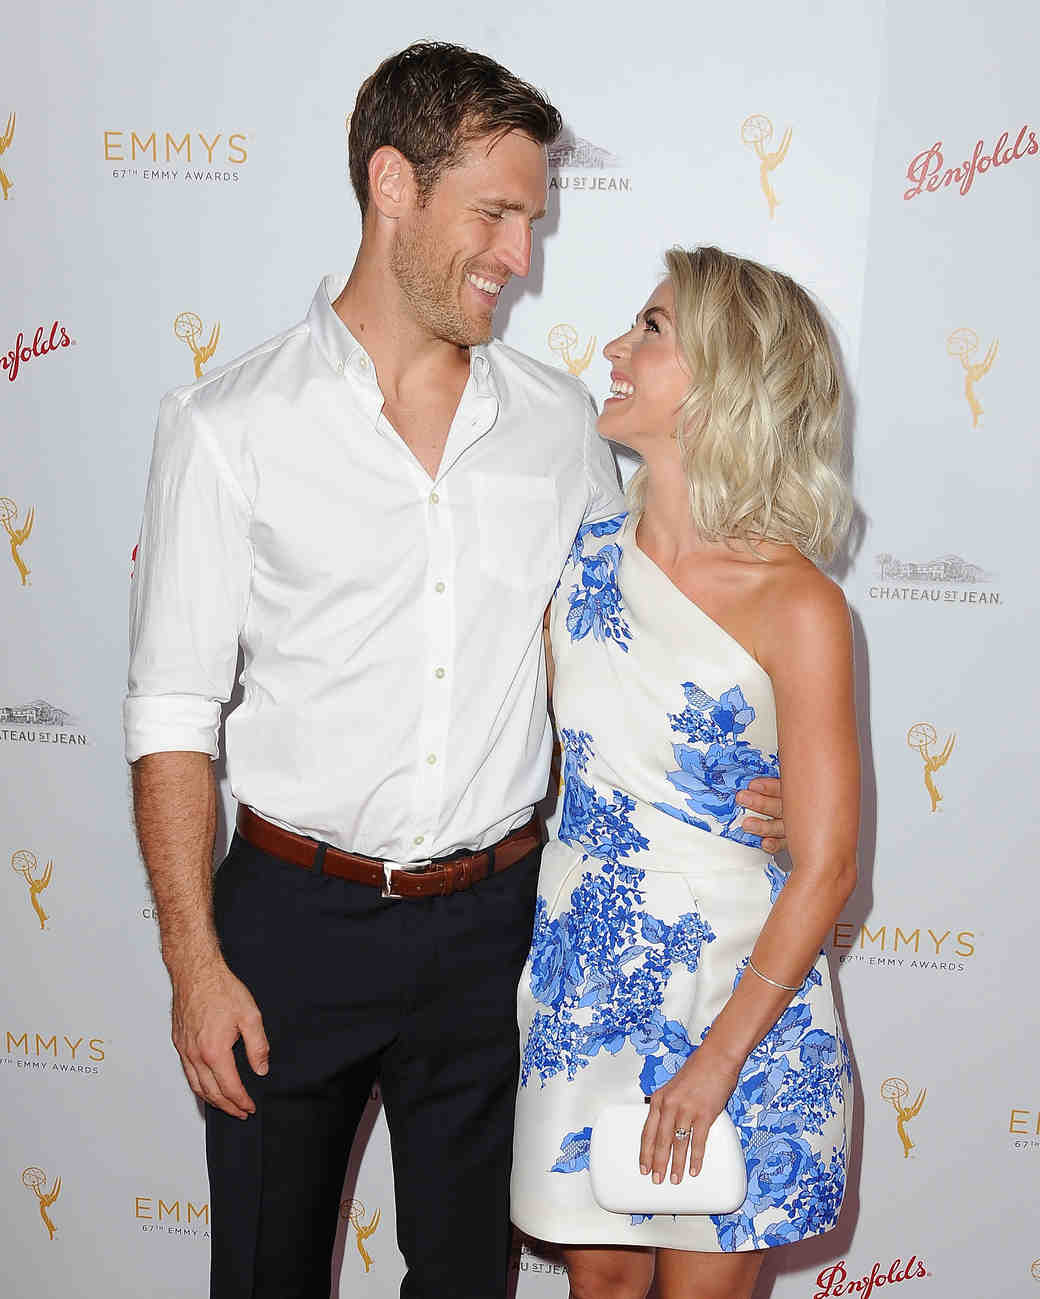 Julianne Hough Dishes on Her Upcoming Wedding to Brooks Laich